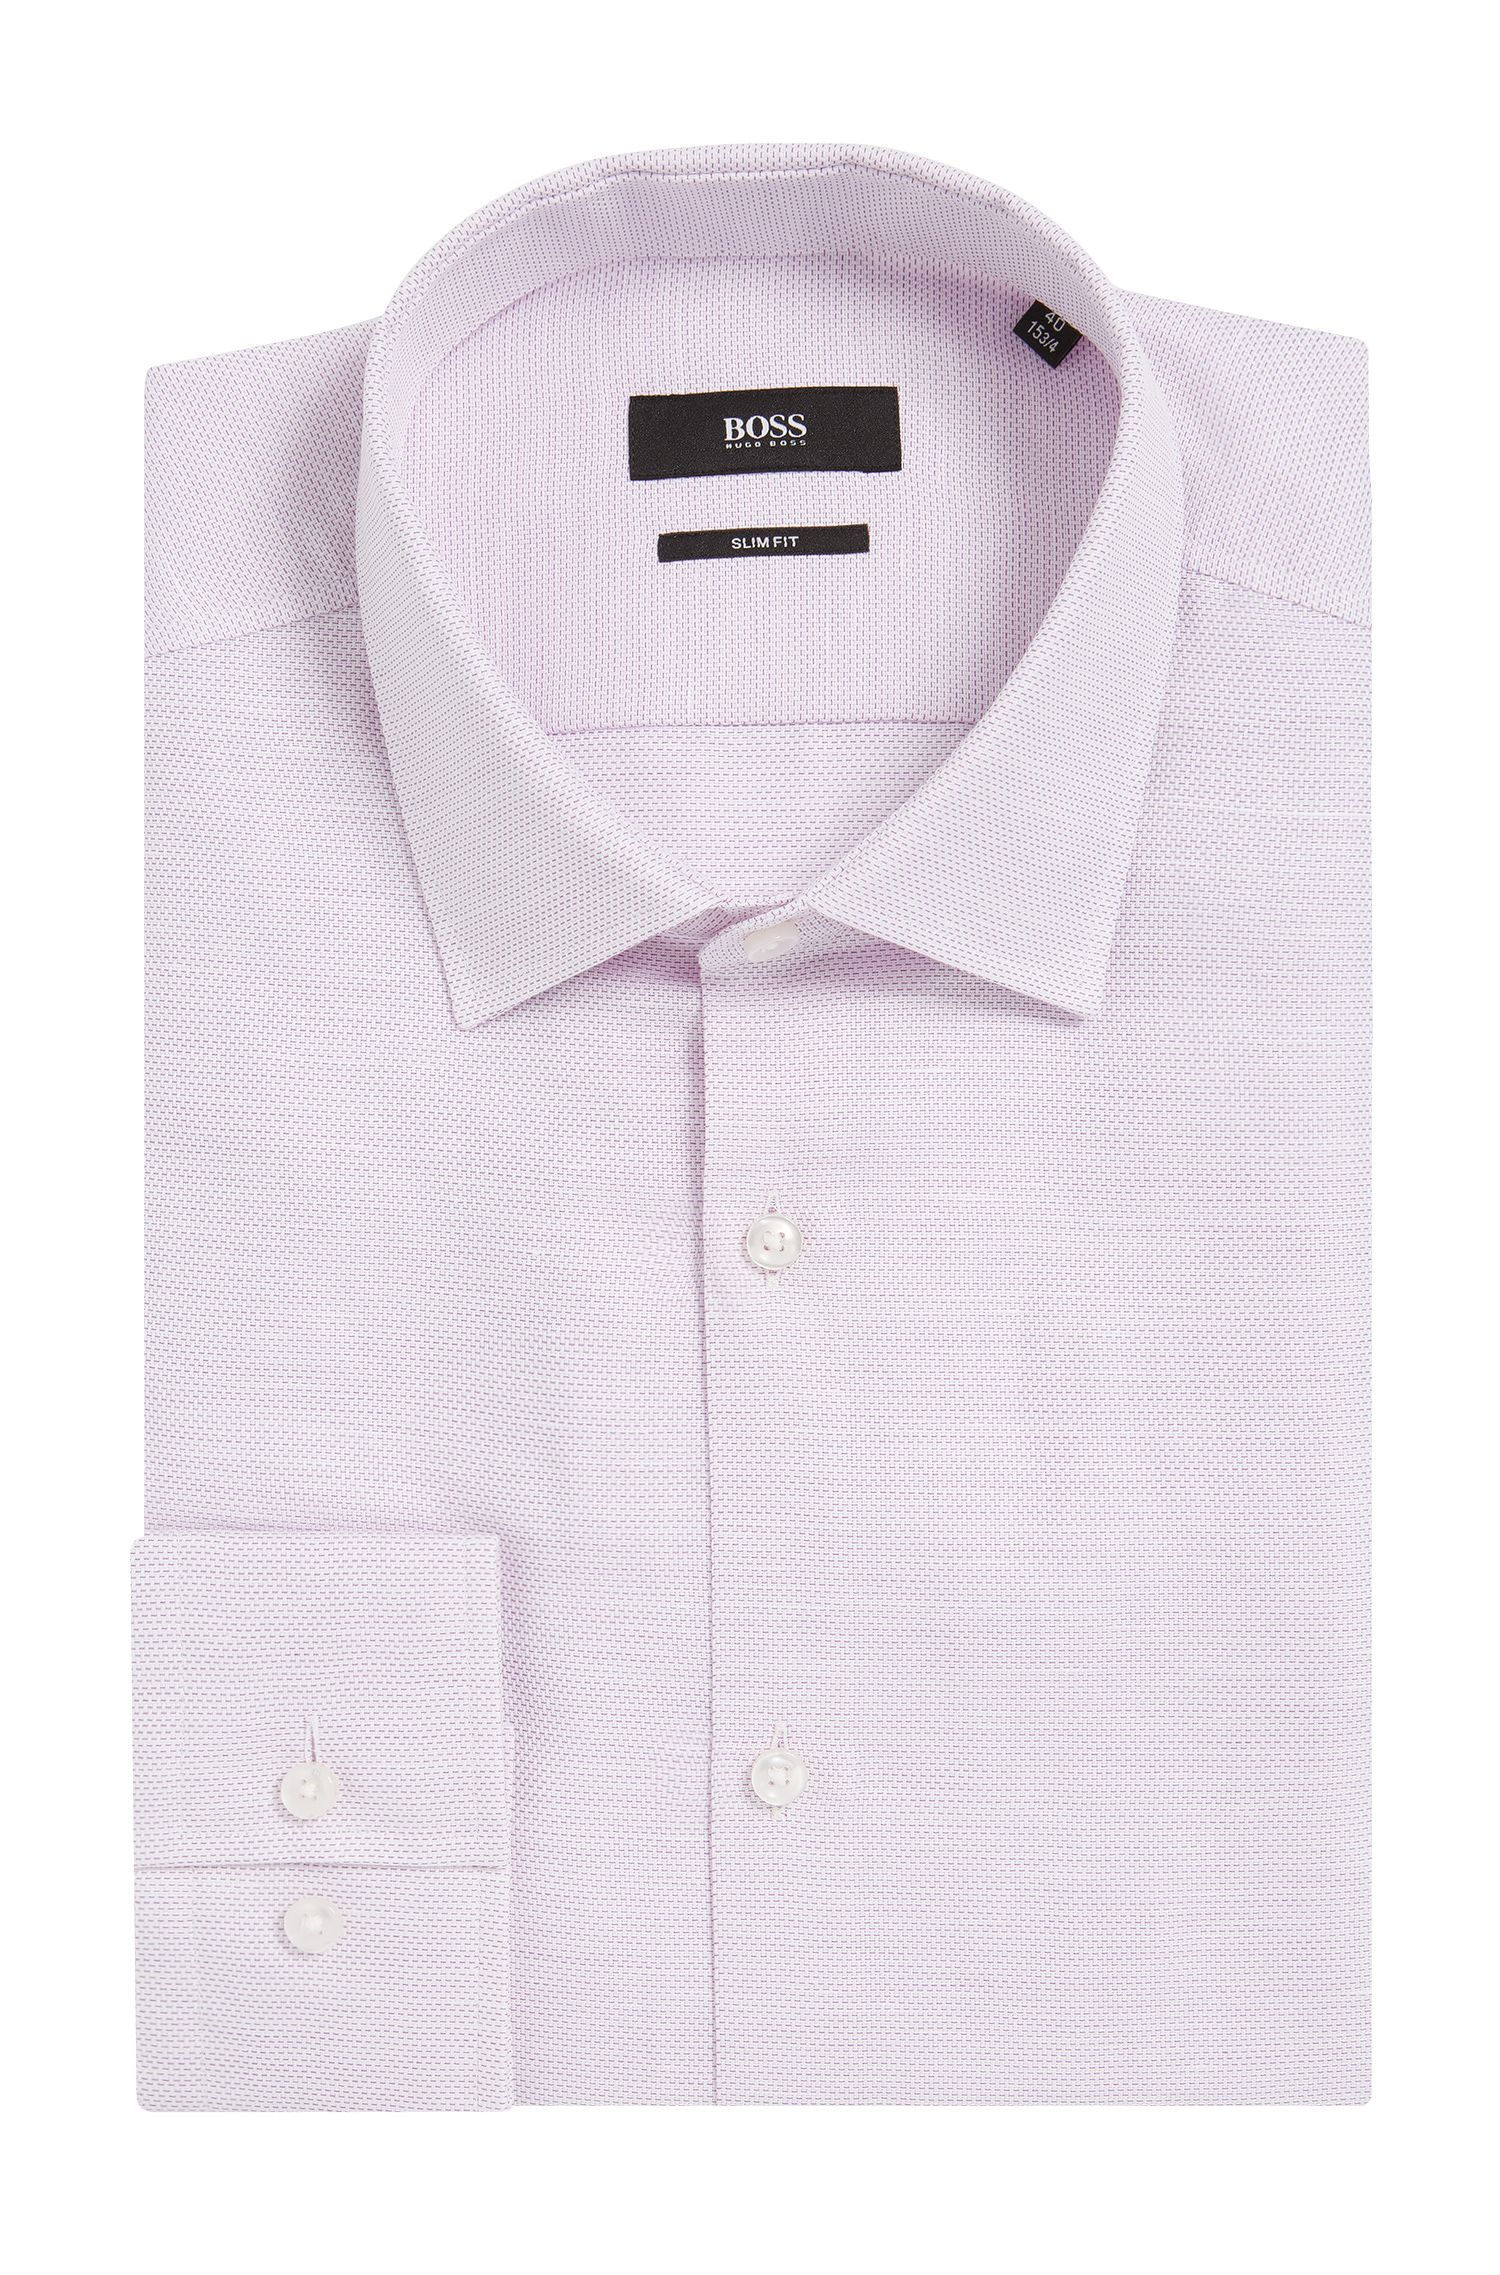 Basketweave Cotton Linen Dress Shirt, Slim Fit | Jenno